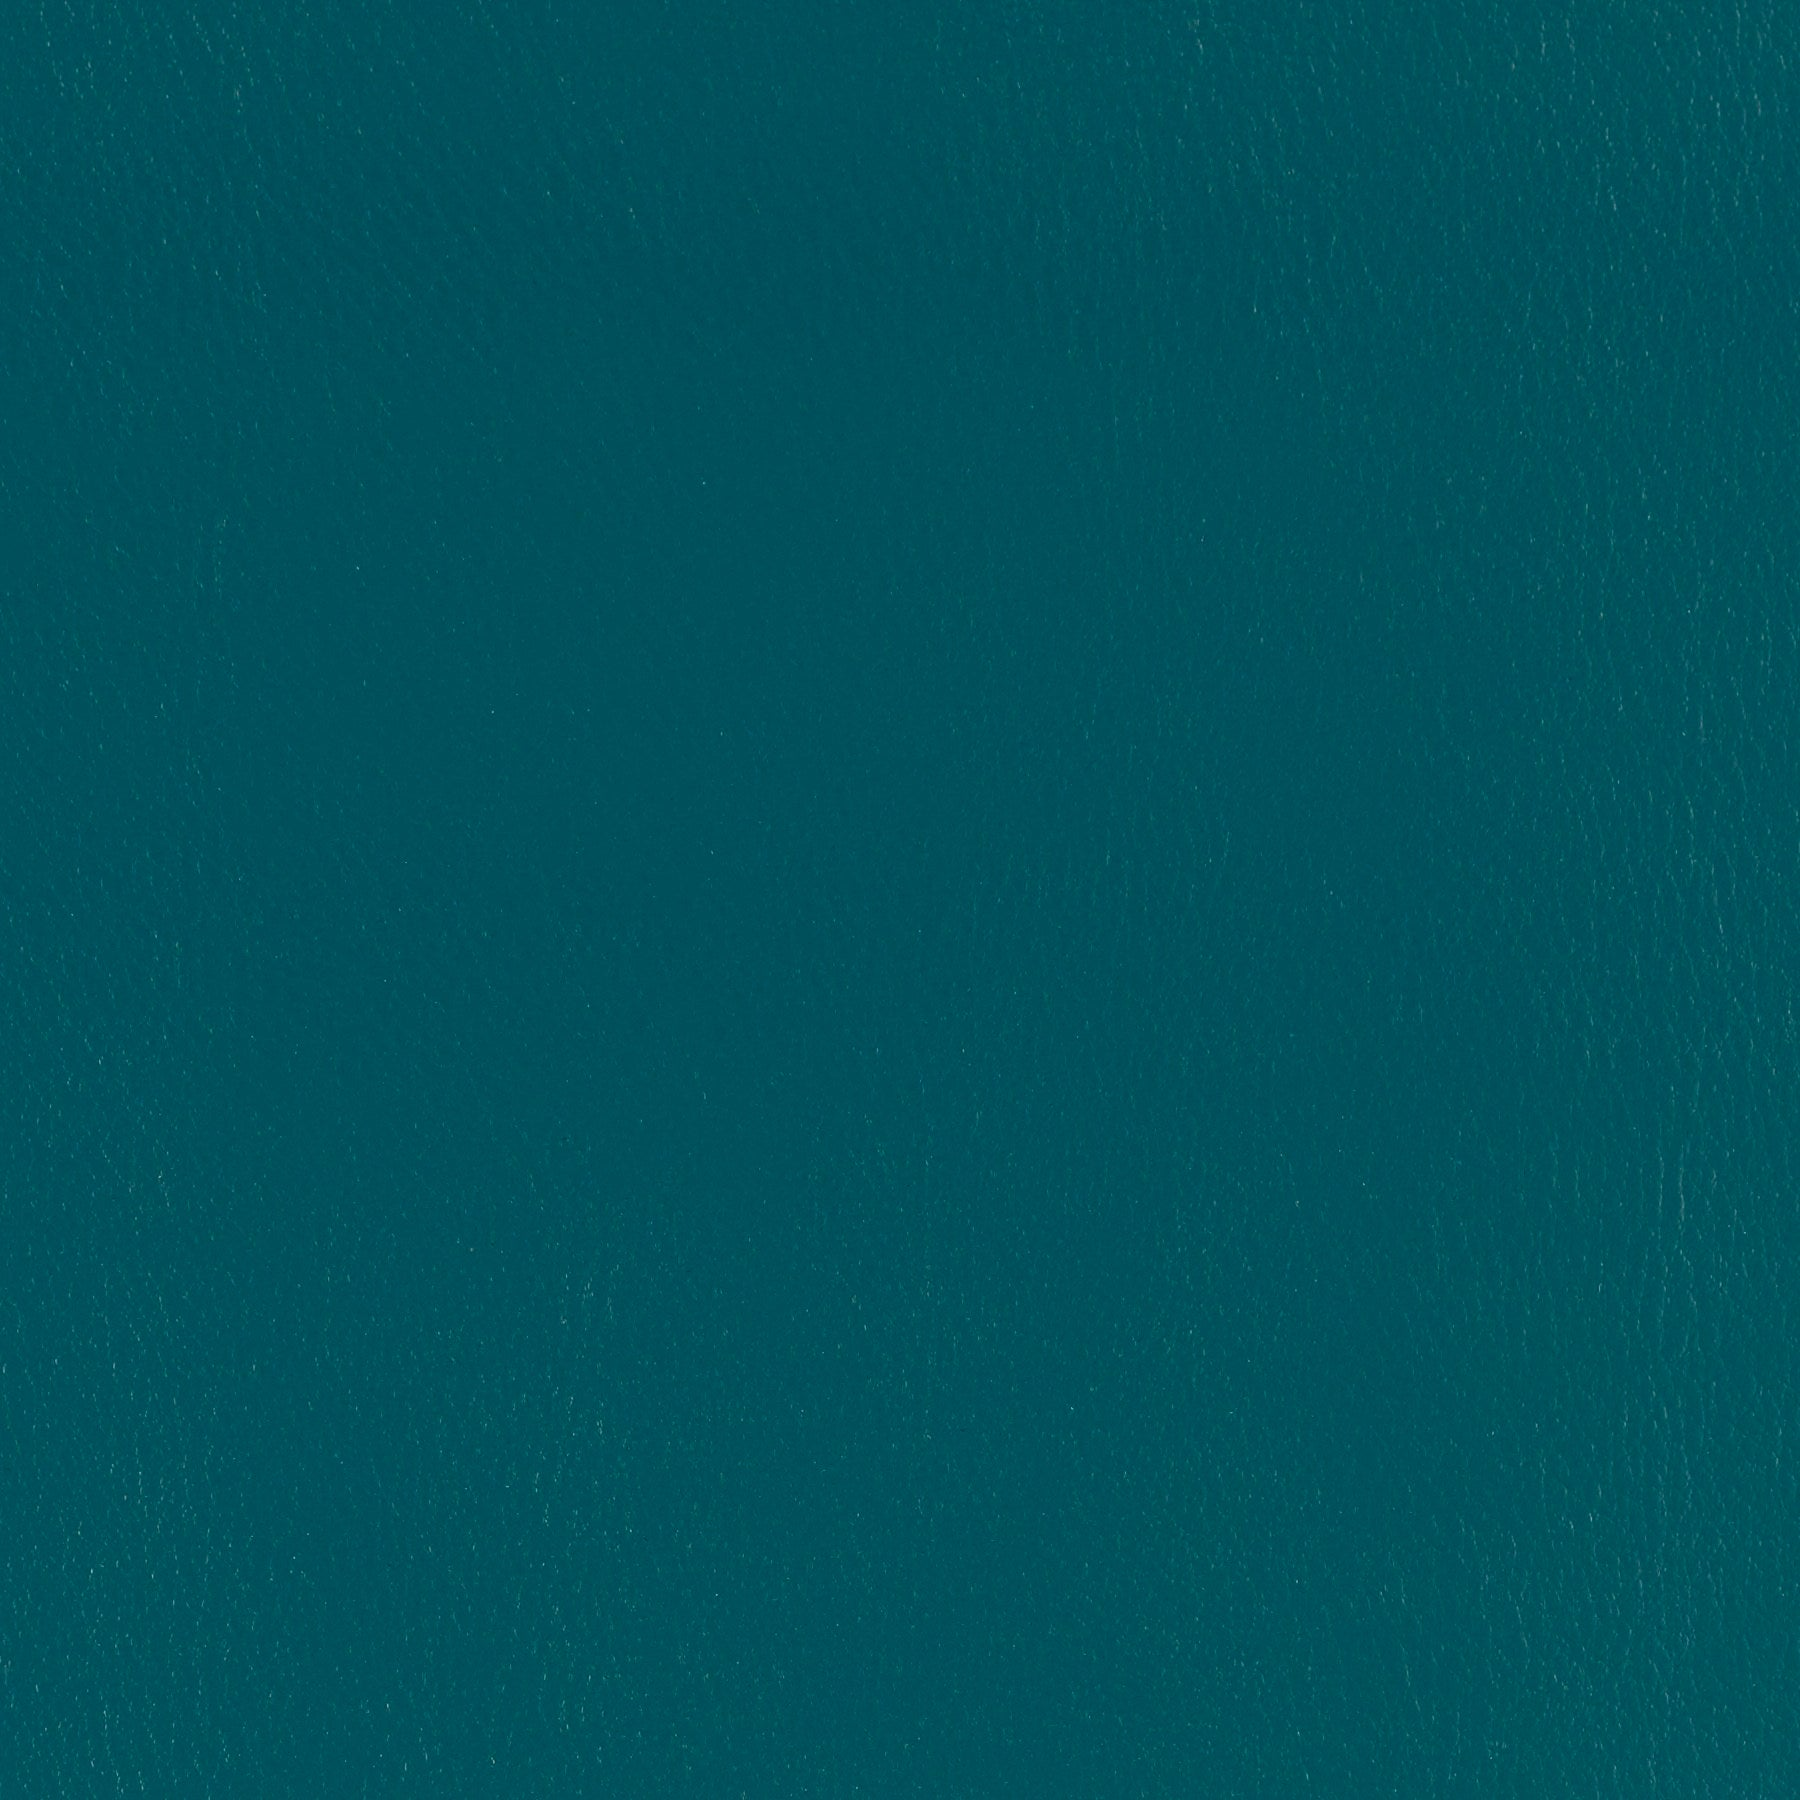 Fine Grain - Fathom Blue - 4046 - 12